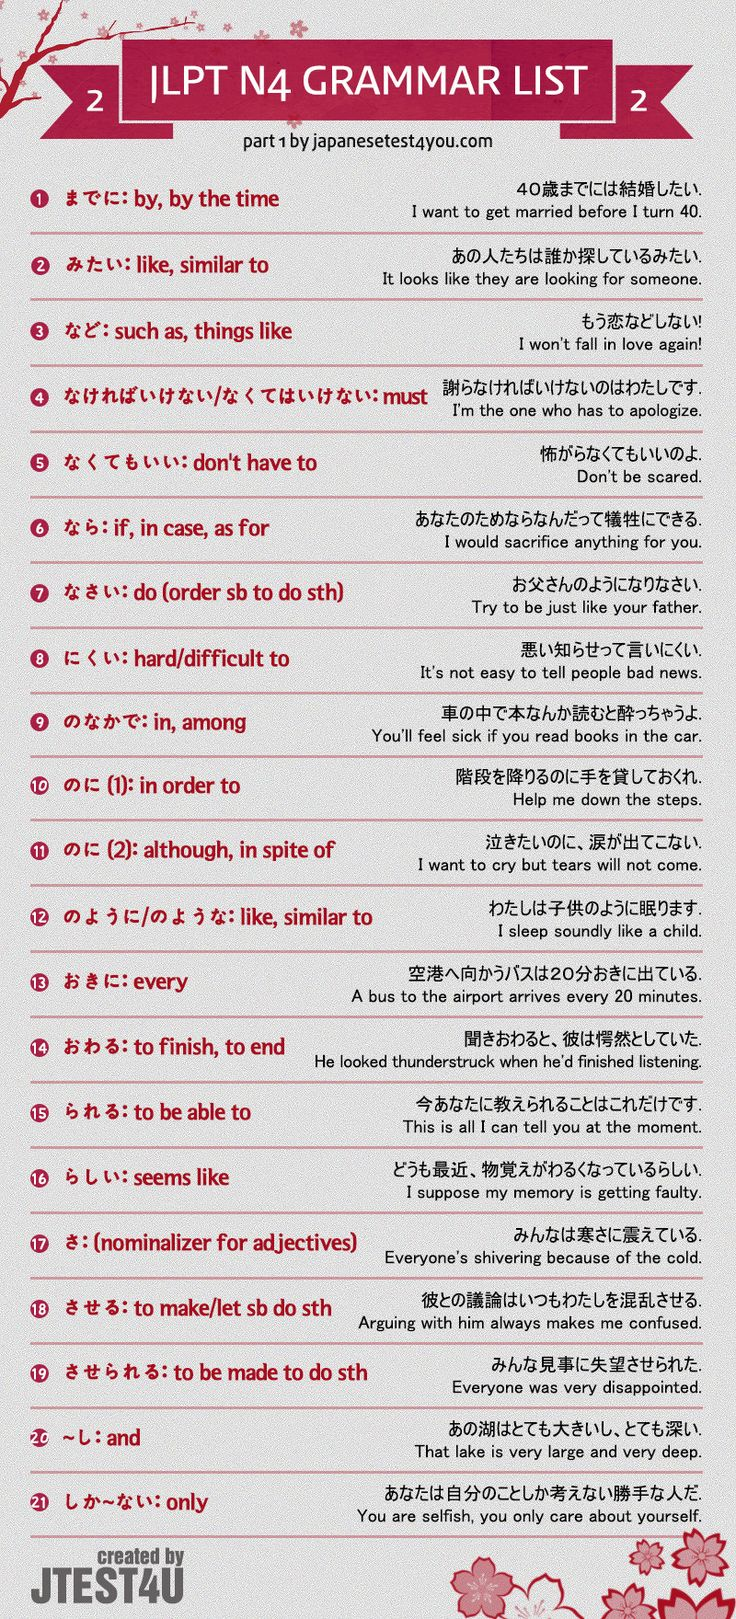 Infographic: JLPT N4 grammar list part 2. http://japanesetest4you.com/jlpt-n4-grammar-list/